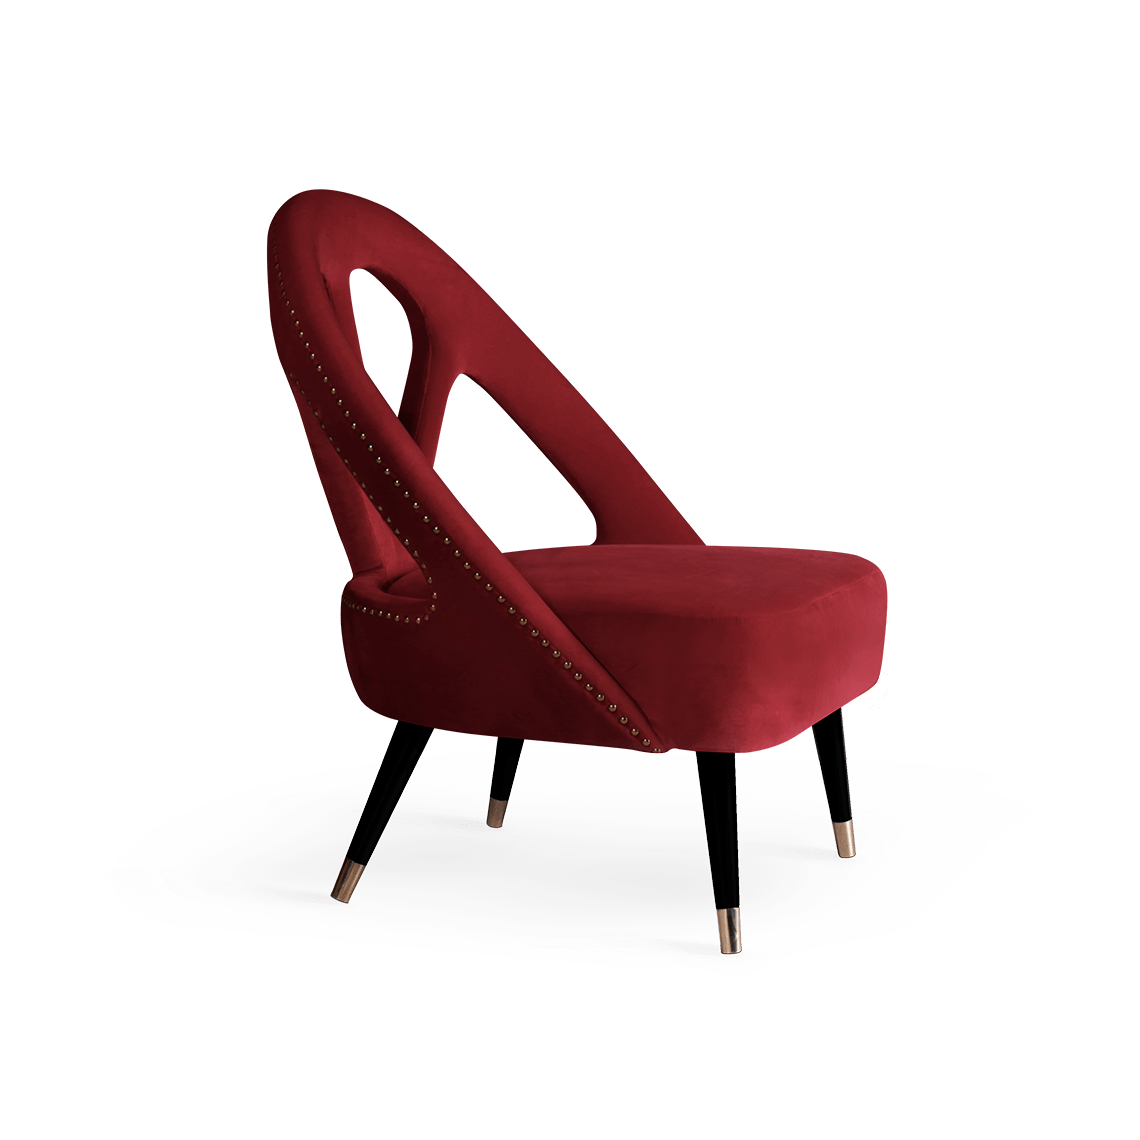 Scarlet Mid-Century Modern Armchair in red cotton velvet